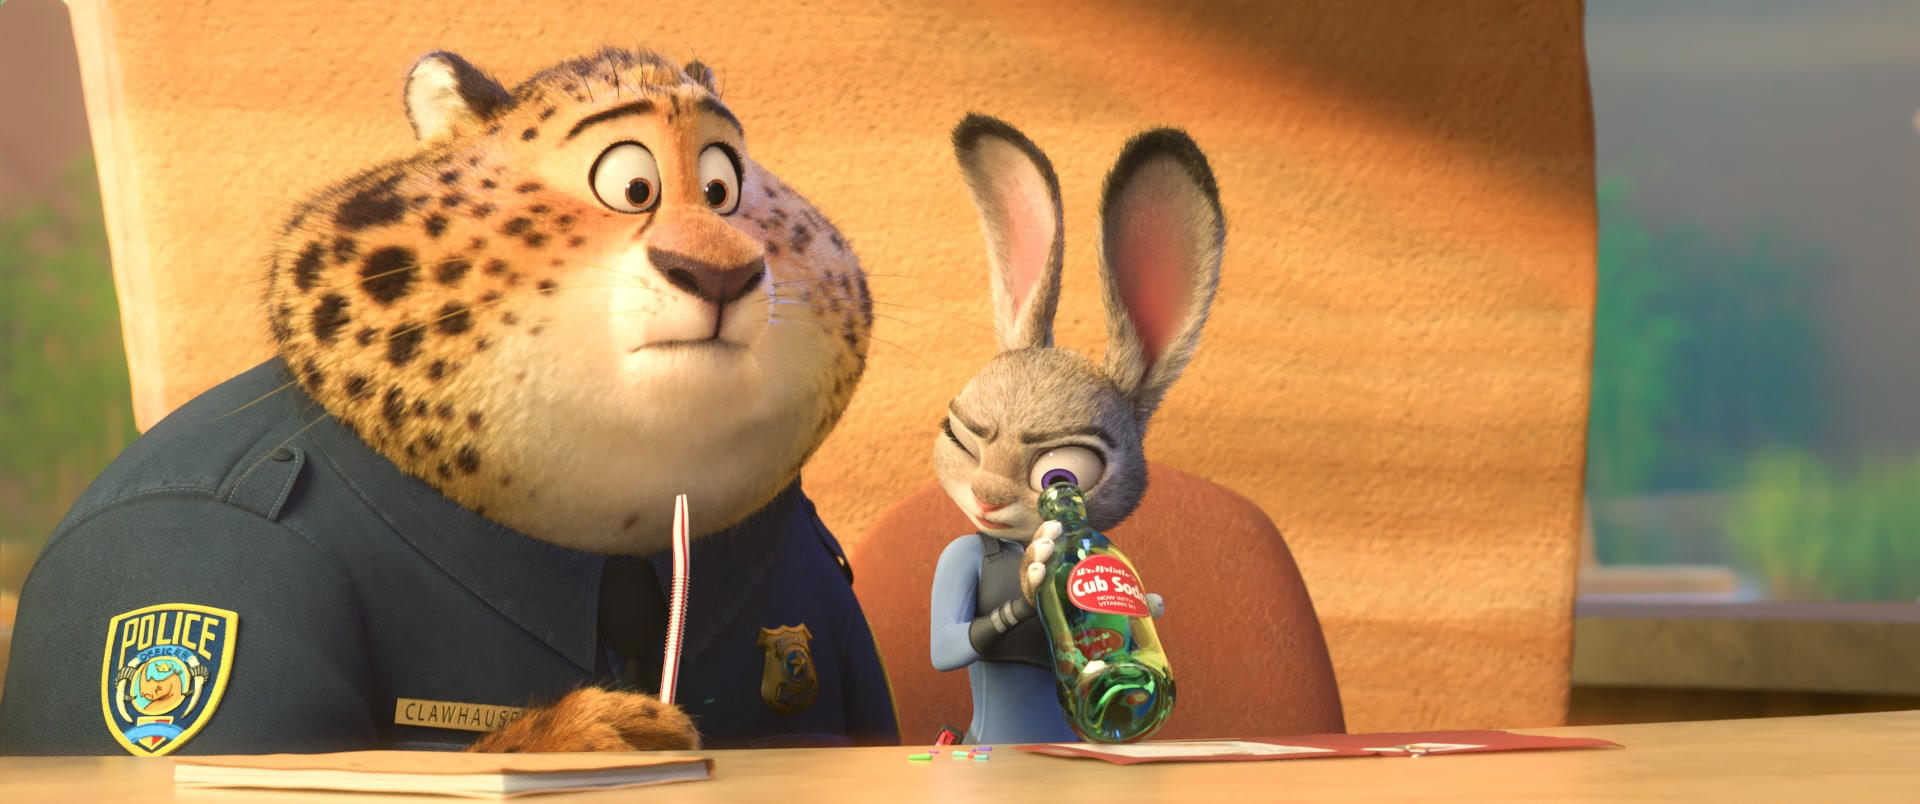 ZOOTOPIA –Easter Egg: Mickey Mouse shape in Clawhauser's spots. ©2016 Disney. All Rights Reserved.